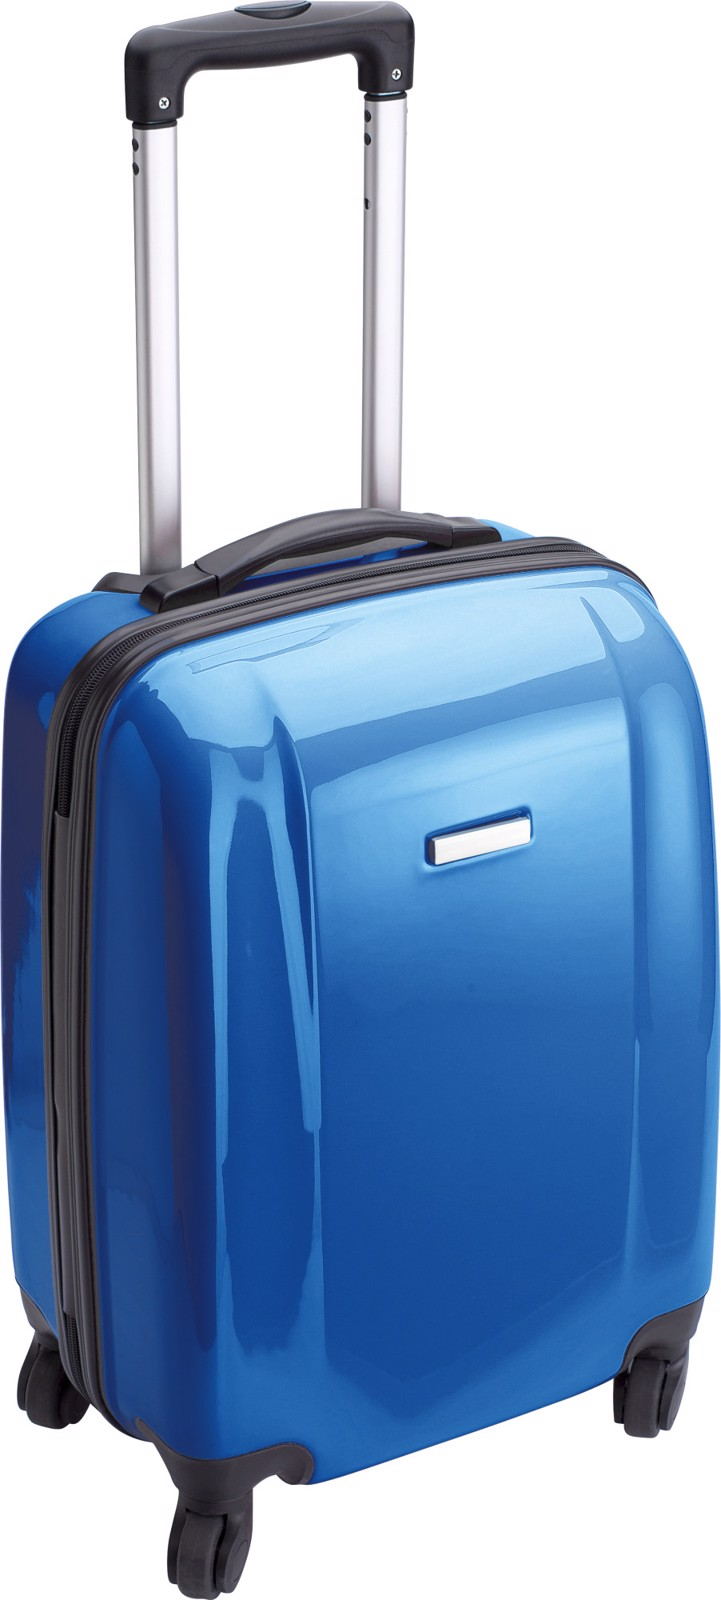 PC and ABS trolley - Cobalt Blue